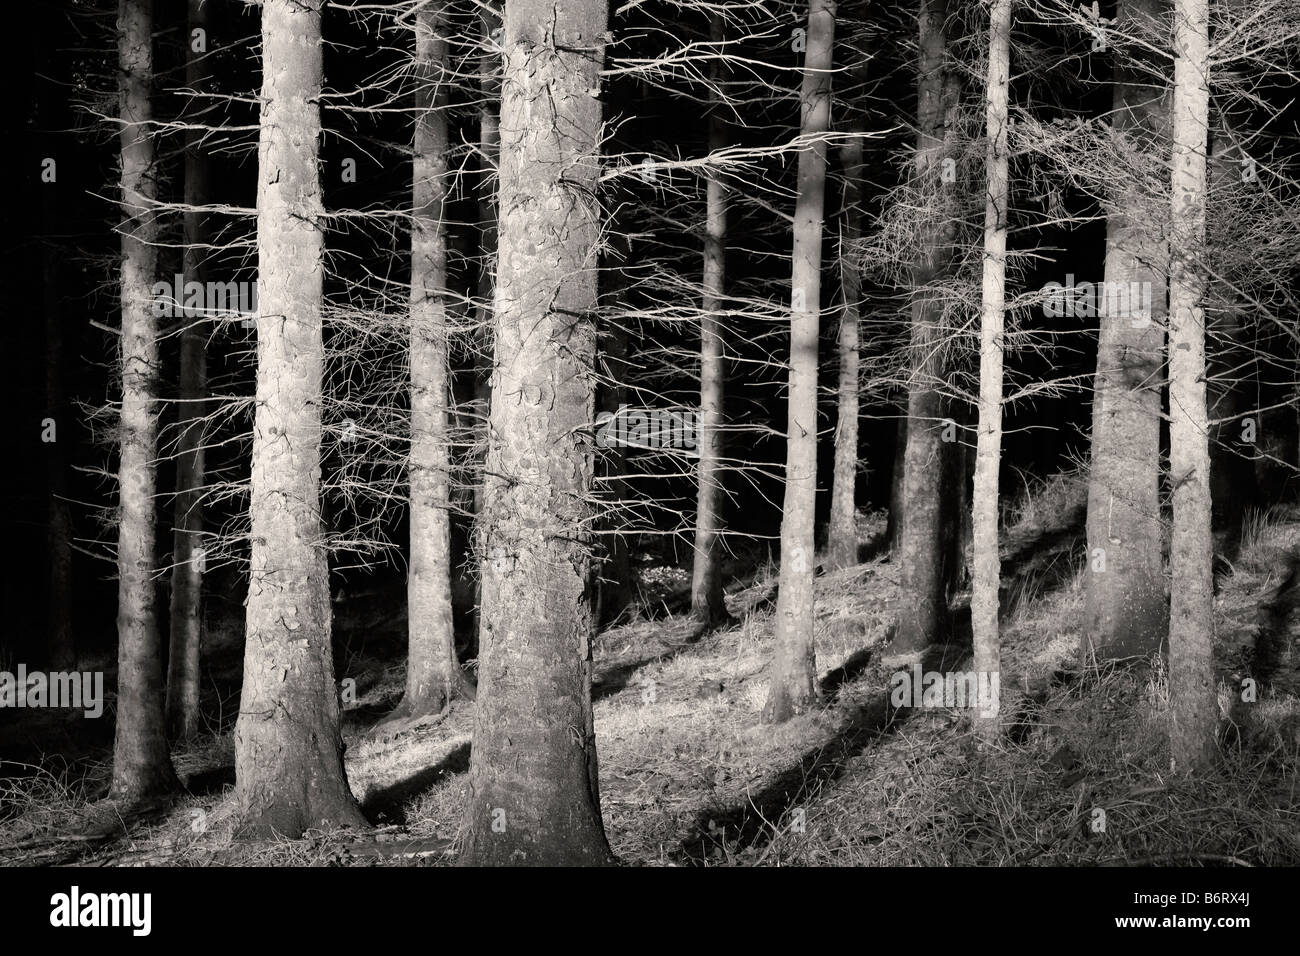 Conifers in Macclesfield Forest Stock Photo